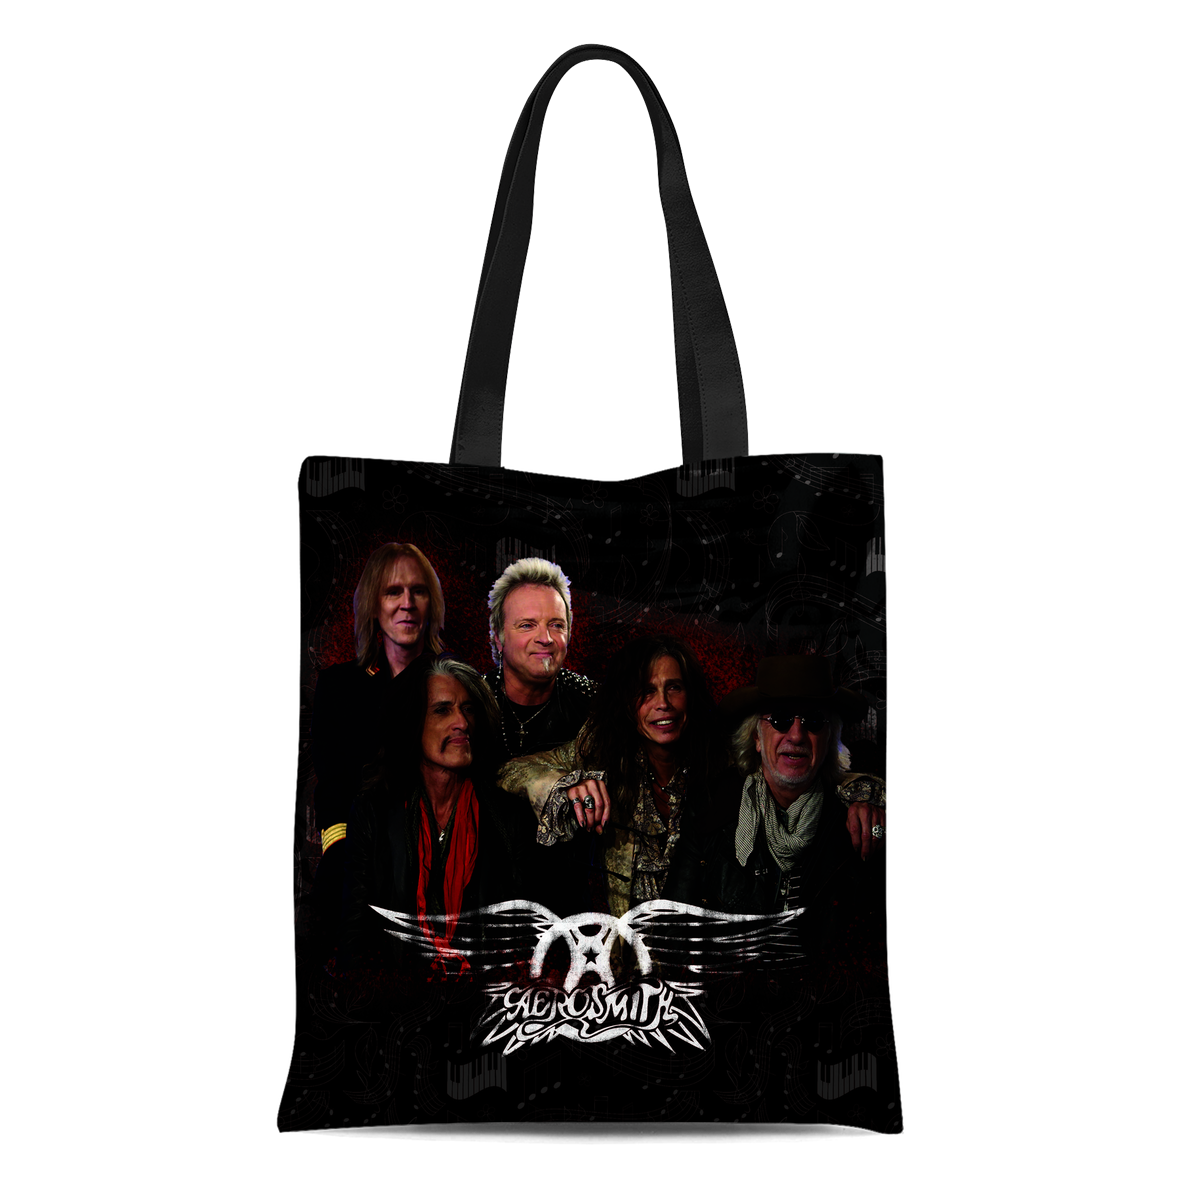 Aerosmith Incredible Cotton Tote